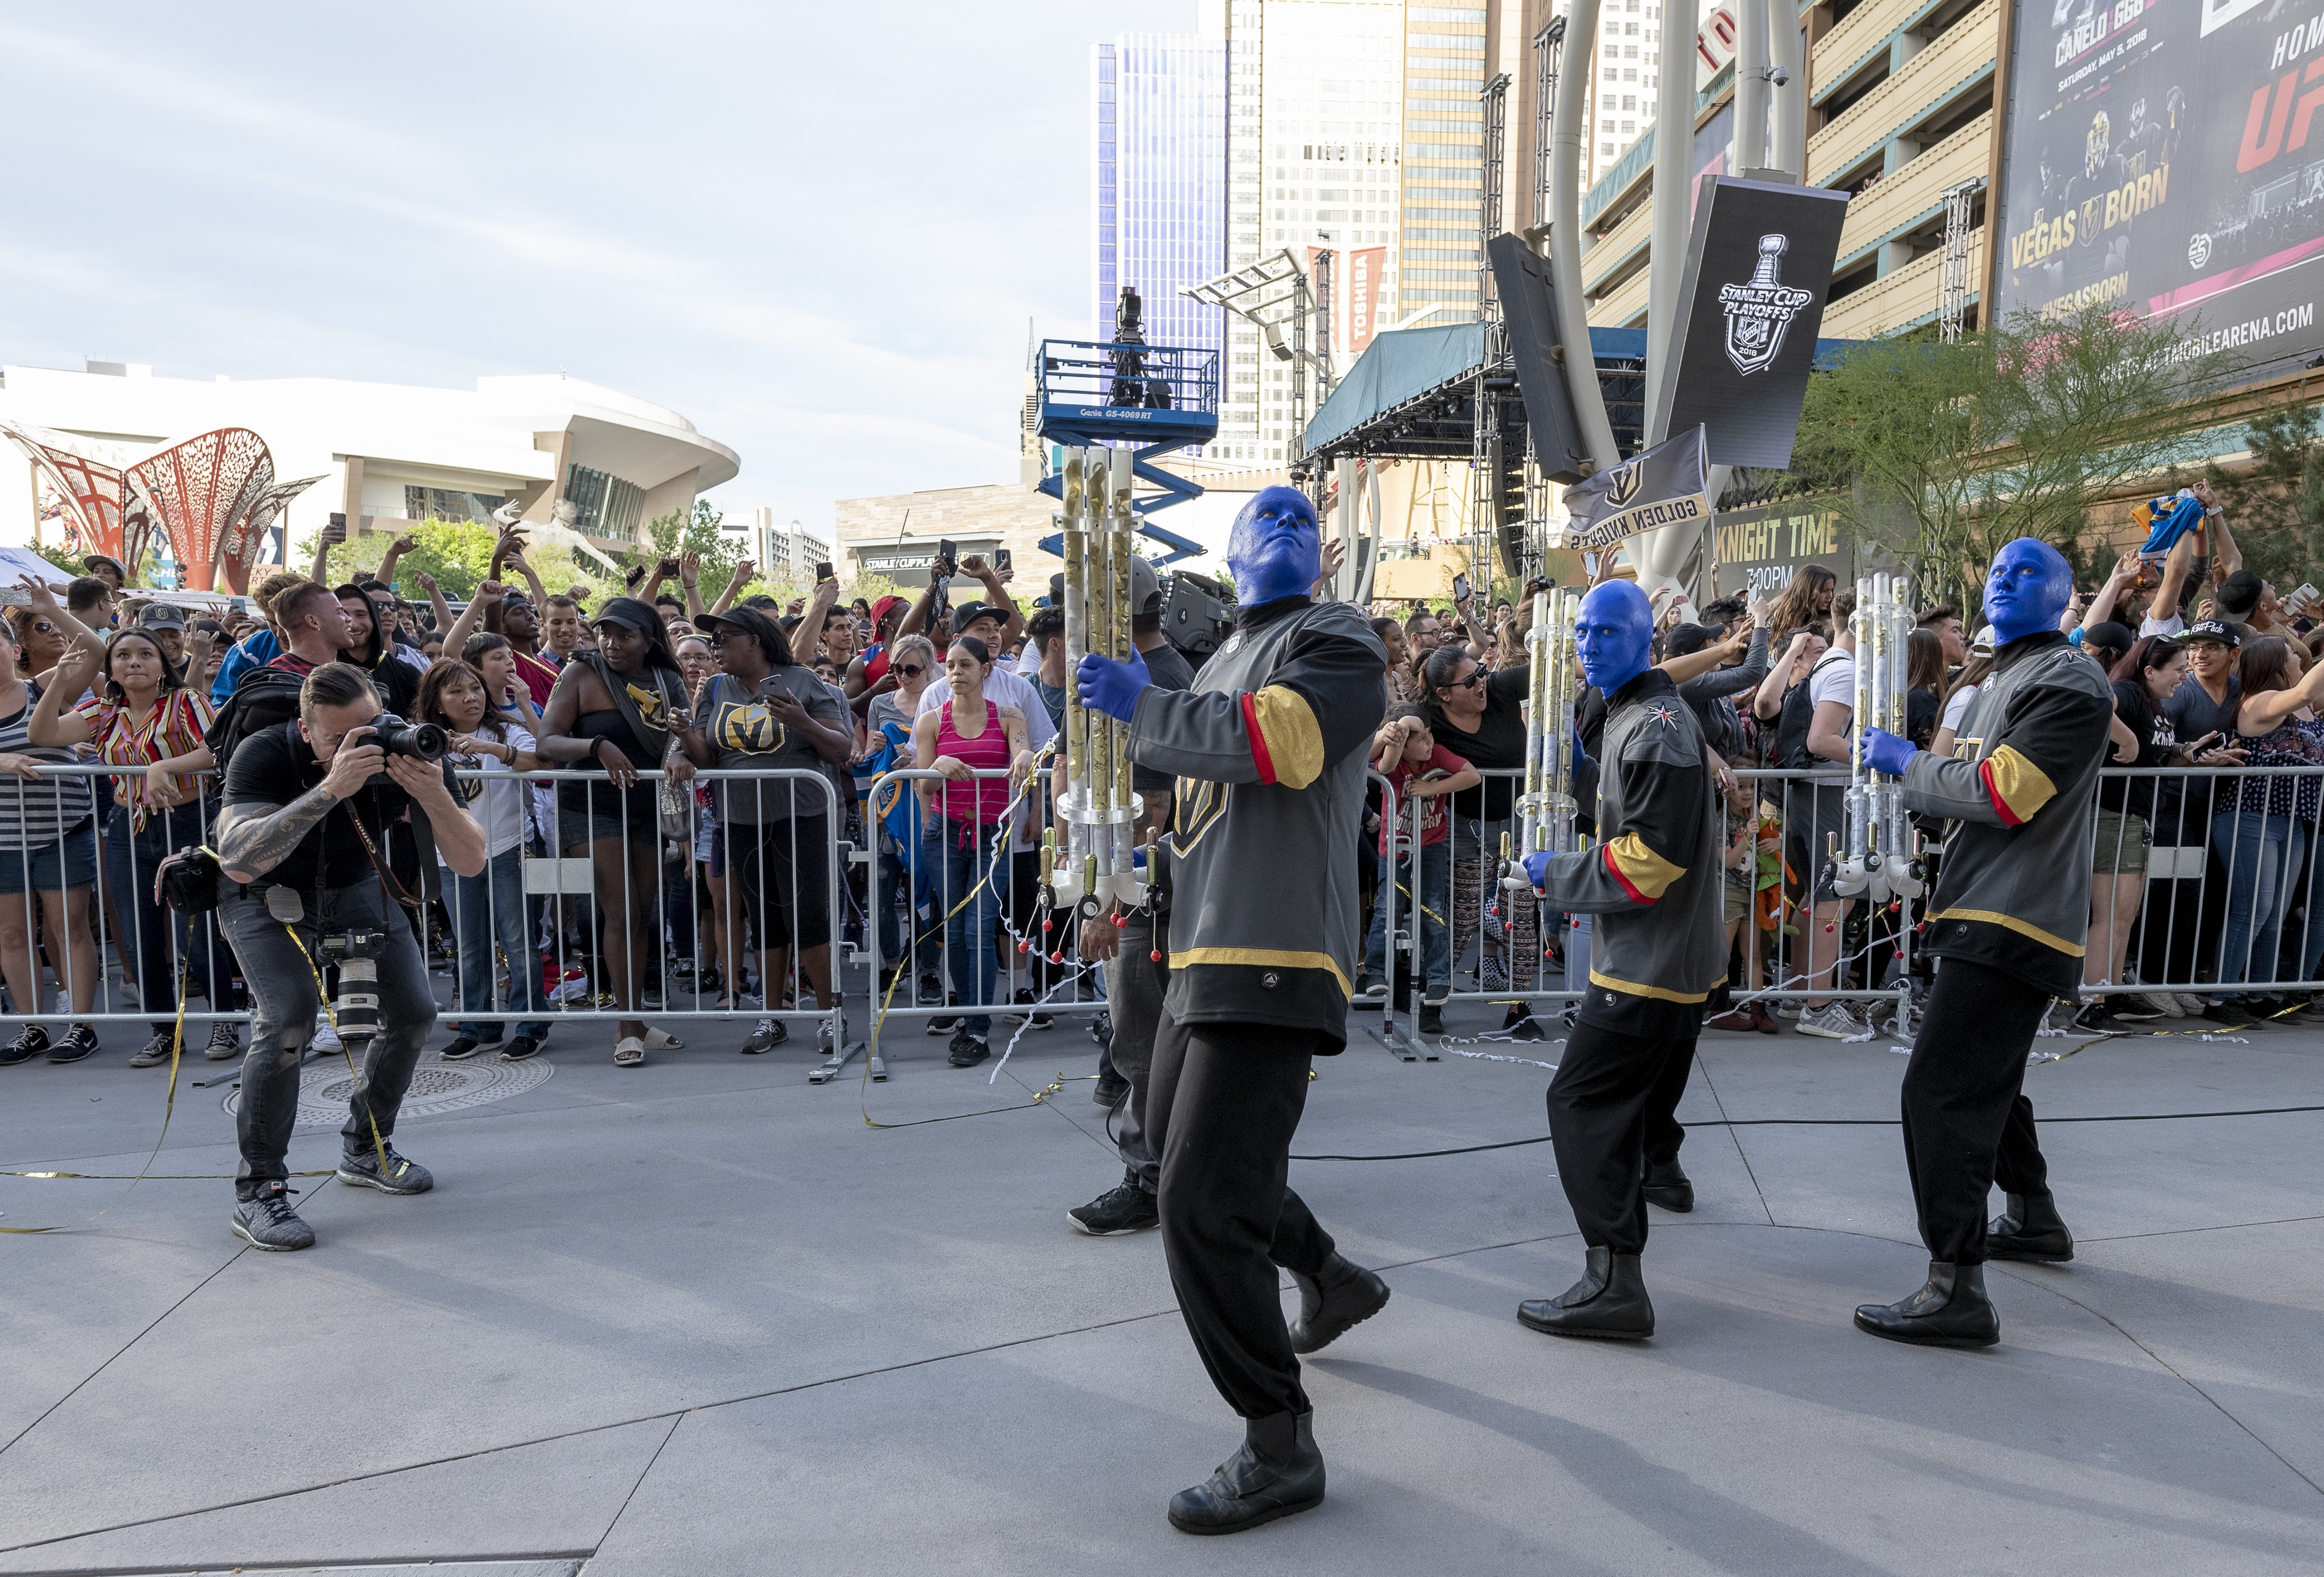 The Blue Man Group joins in the pre-game celebration in Toshiba Plaza as the Vegas Golden Knights prepare to meet the Los Angeles Kings in the first quarterfinal game of the NHL Stanley Cup Playoffs at T-Mobile Arena in Las Vegas on Wednesday, April 11, 2018.  CREDIT: Mark Damon/Las Vegas News Bureau